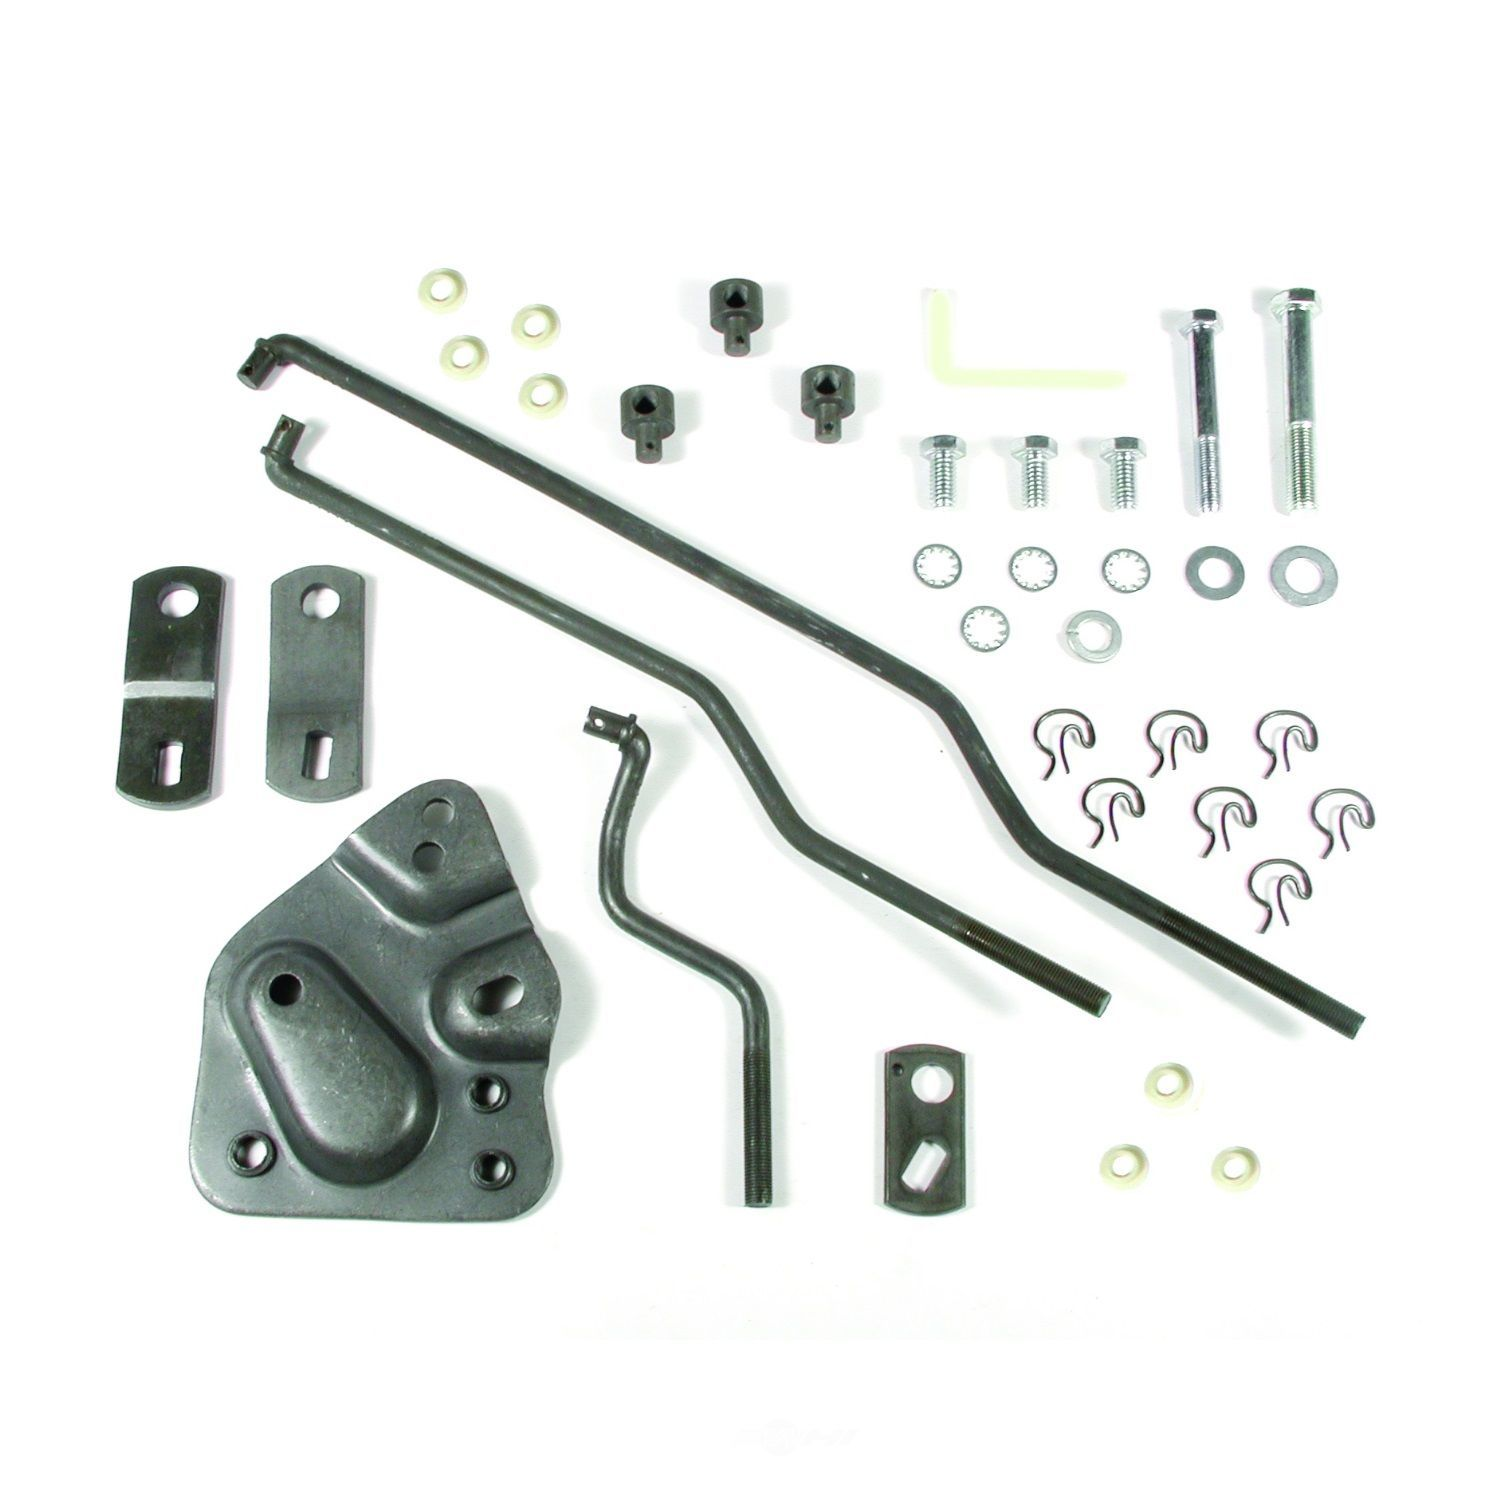 HURST - Manual Transmission Shifter Lever Kit - HUR 3733162